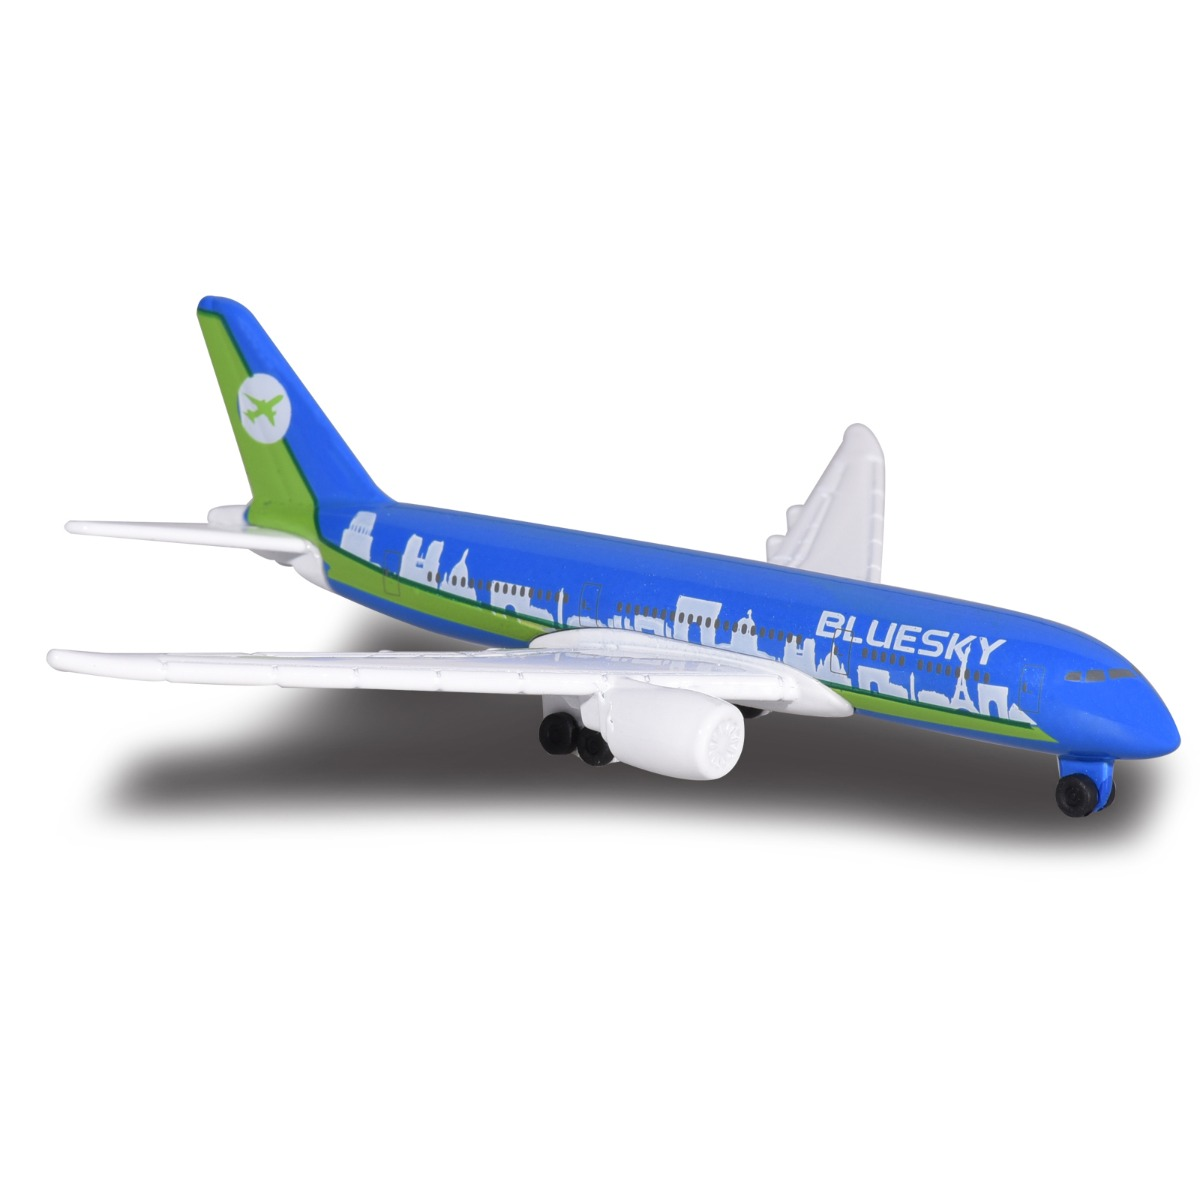 Avion Fantasy Airplane Majorette, Boeing, 13 cm